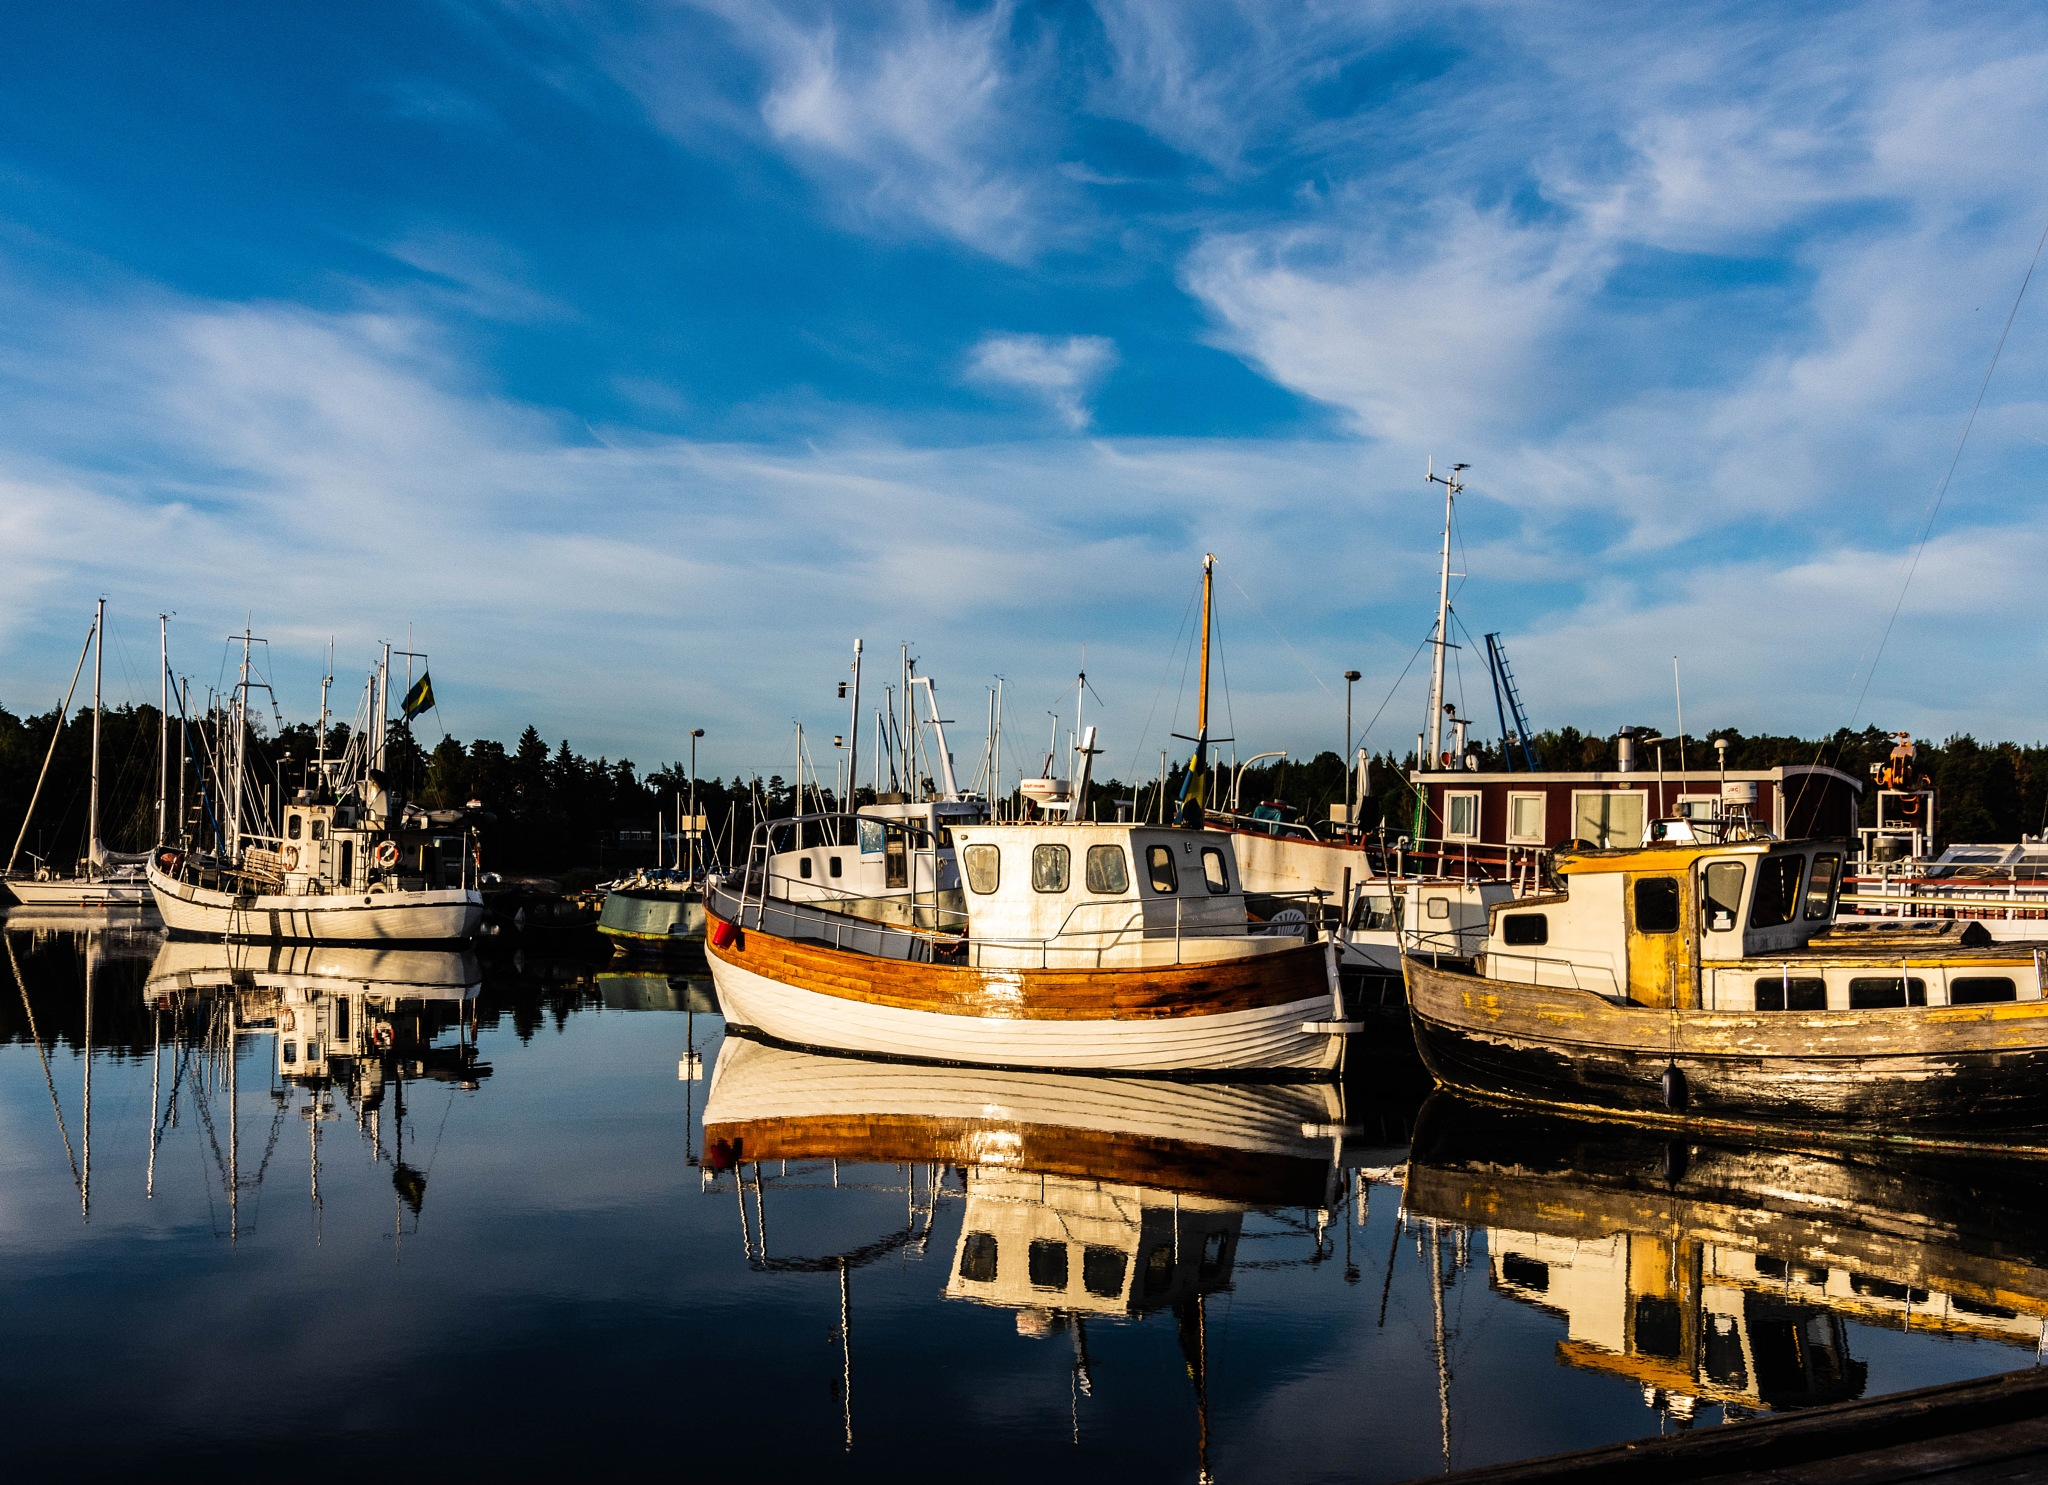 Boats by Johnny Lythell